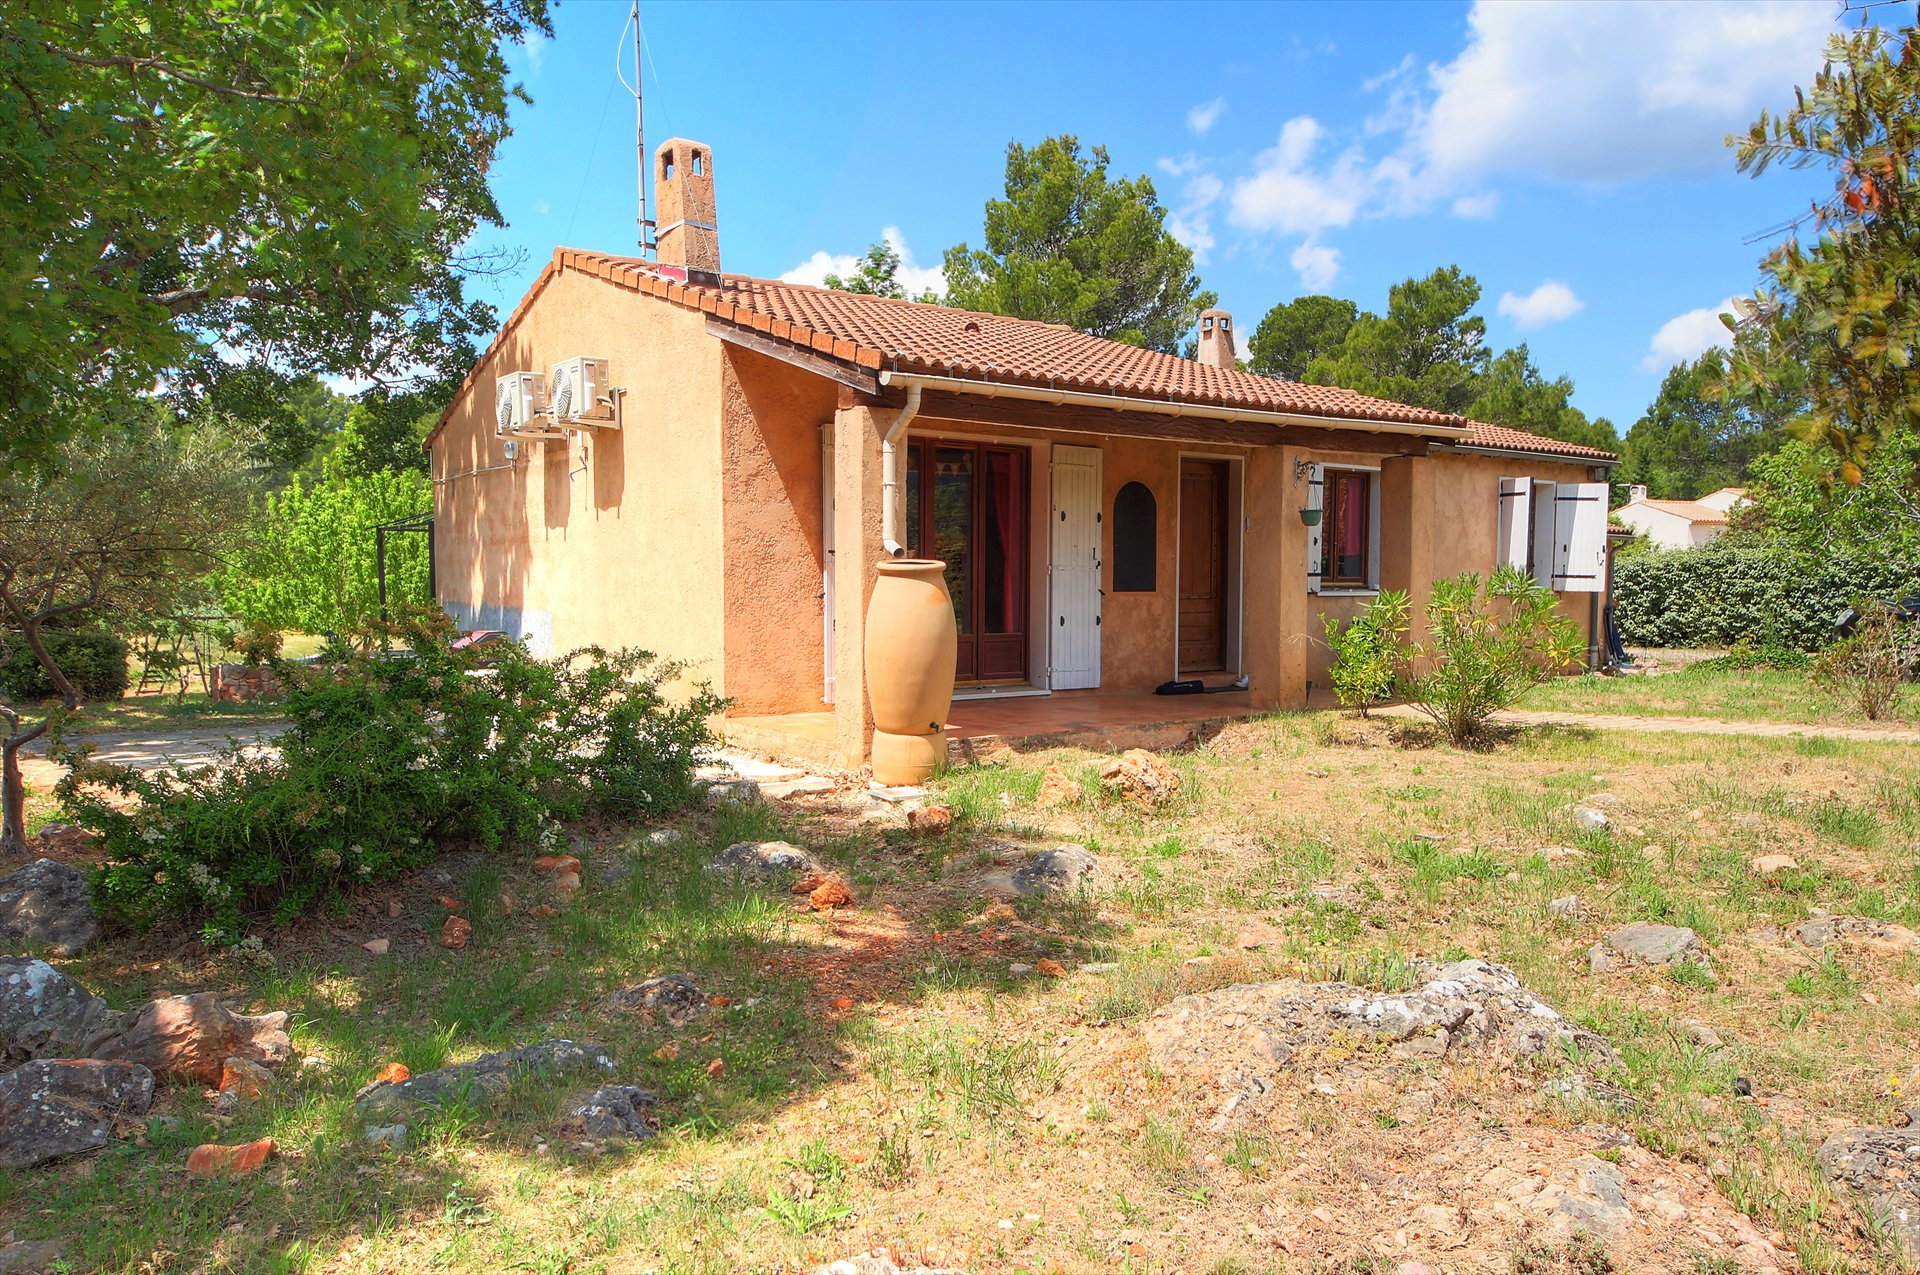 Nice house renovated with garden - Walking from the village